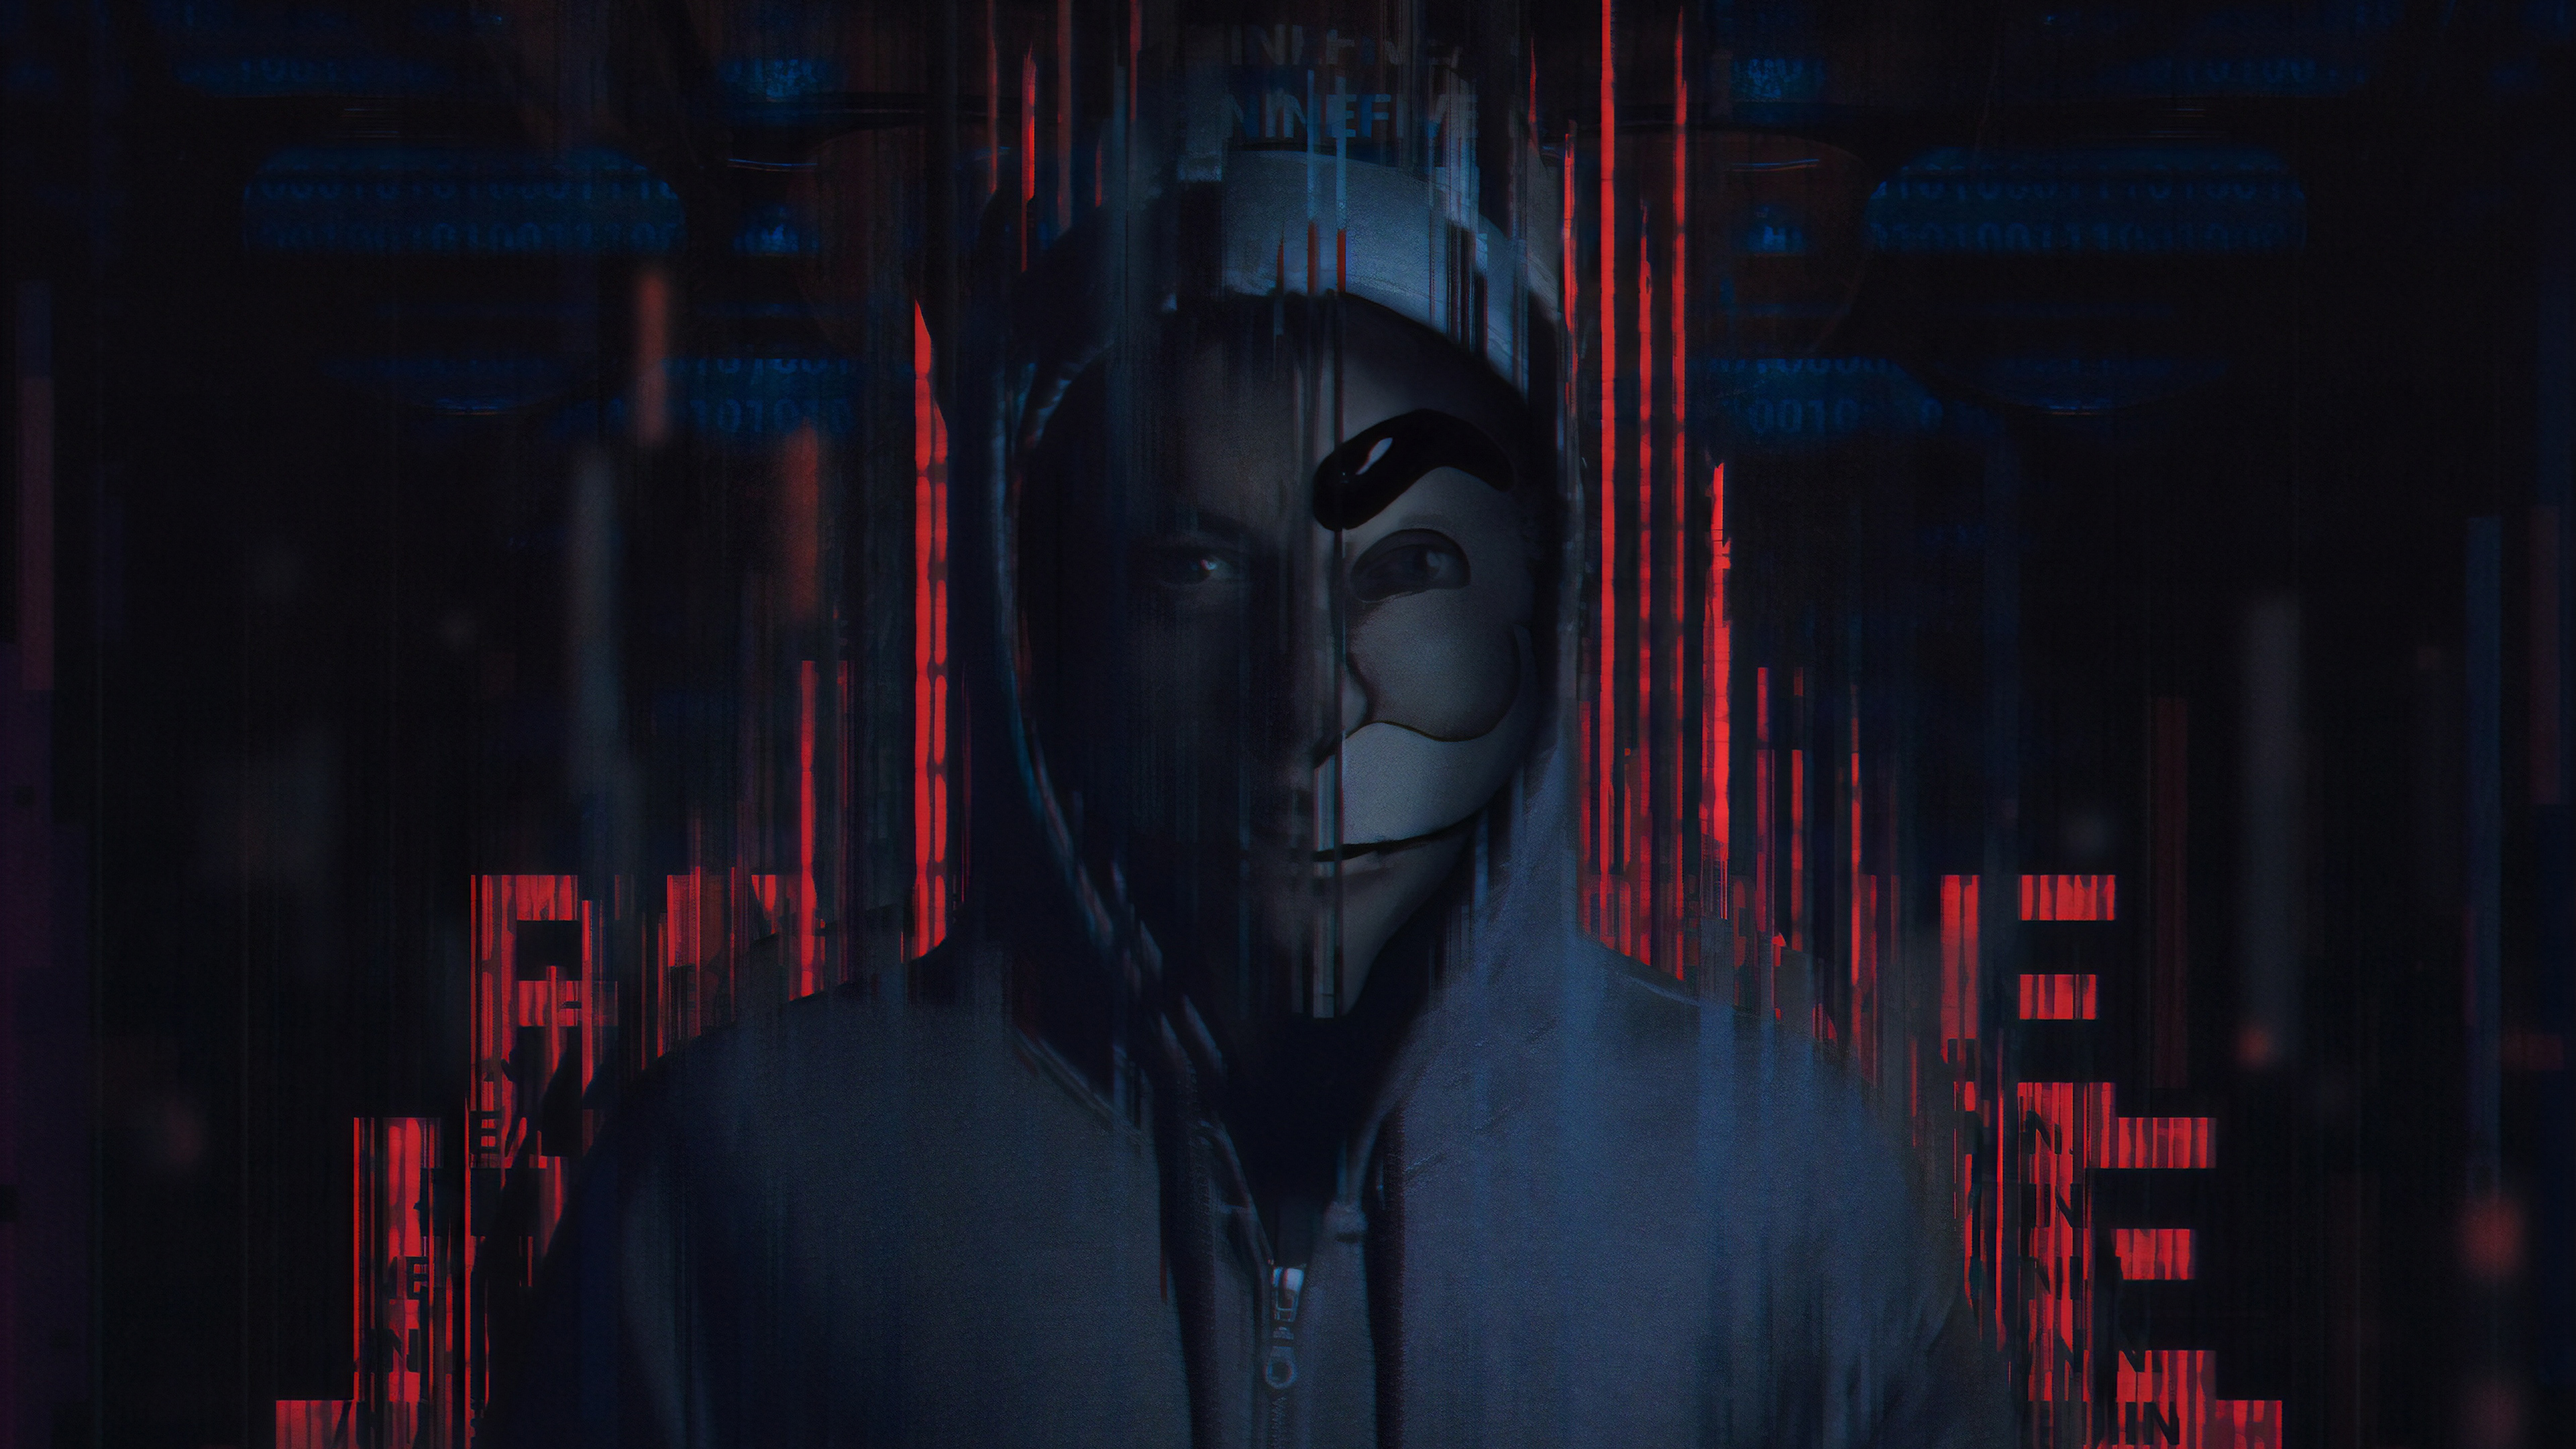 Mr Robot Tv Series 4k Hd Tv Shows 4k Wallpapers Images